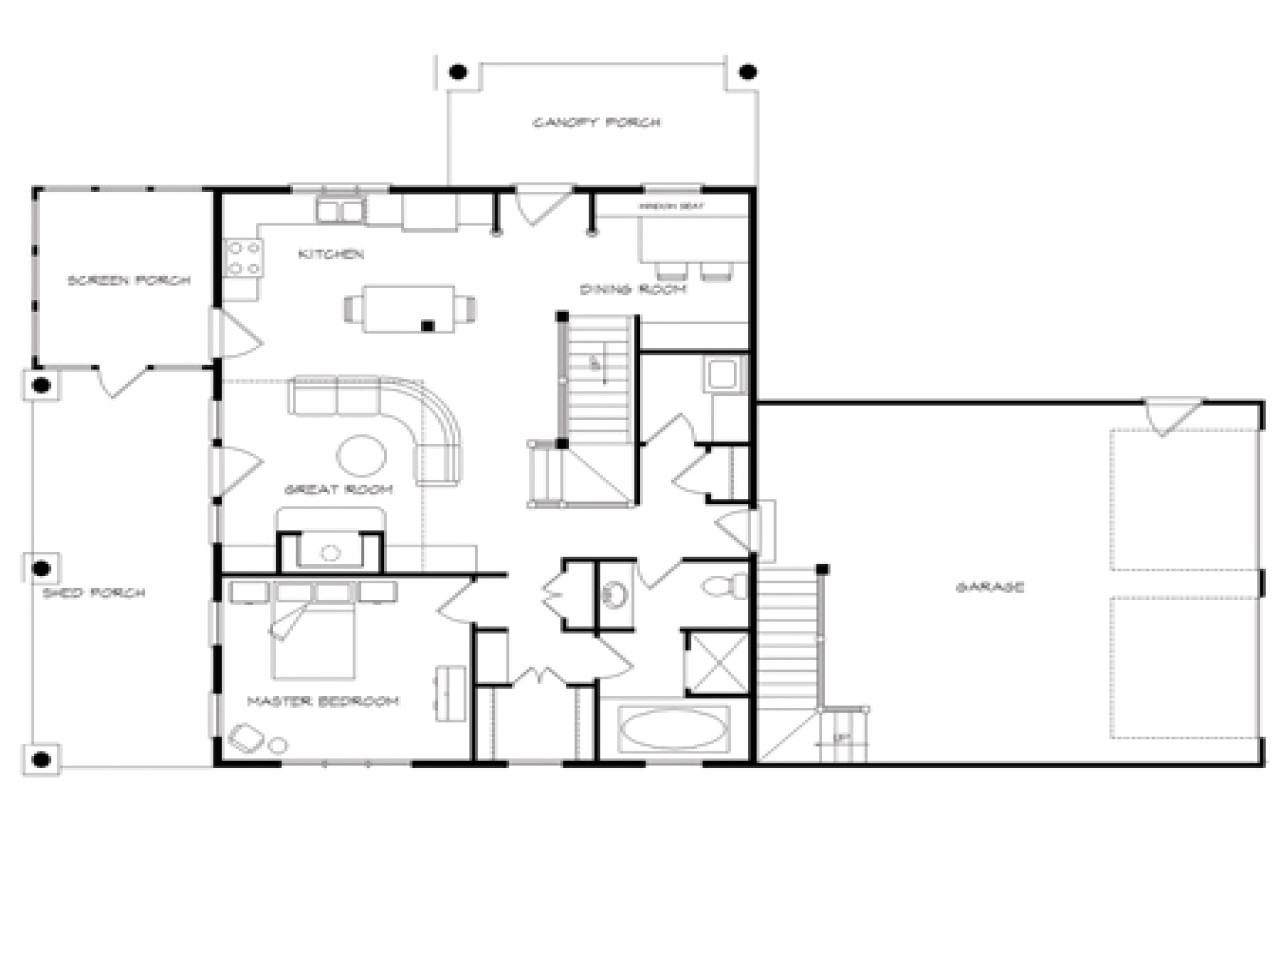 House Plans with Wrap Around Porch and Open Floor Plan Log Home Plans with Open Floor Plans Log Home Plans with